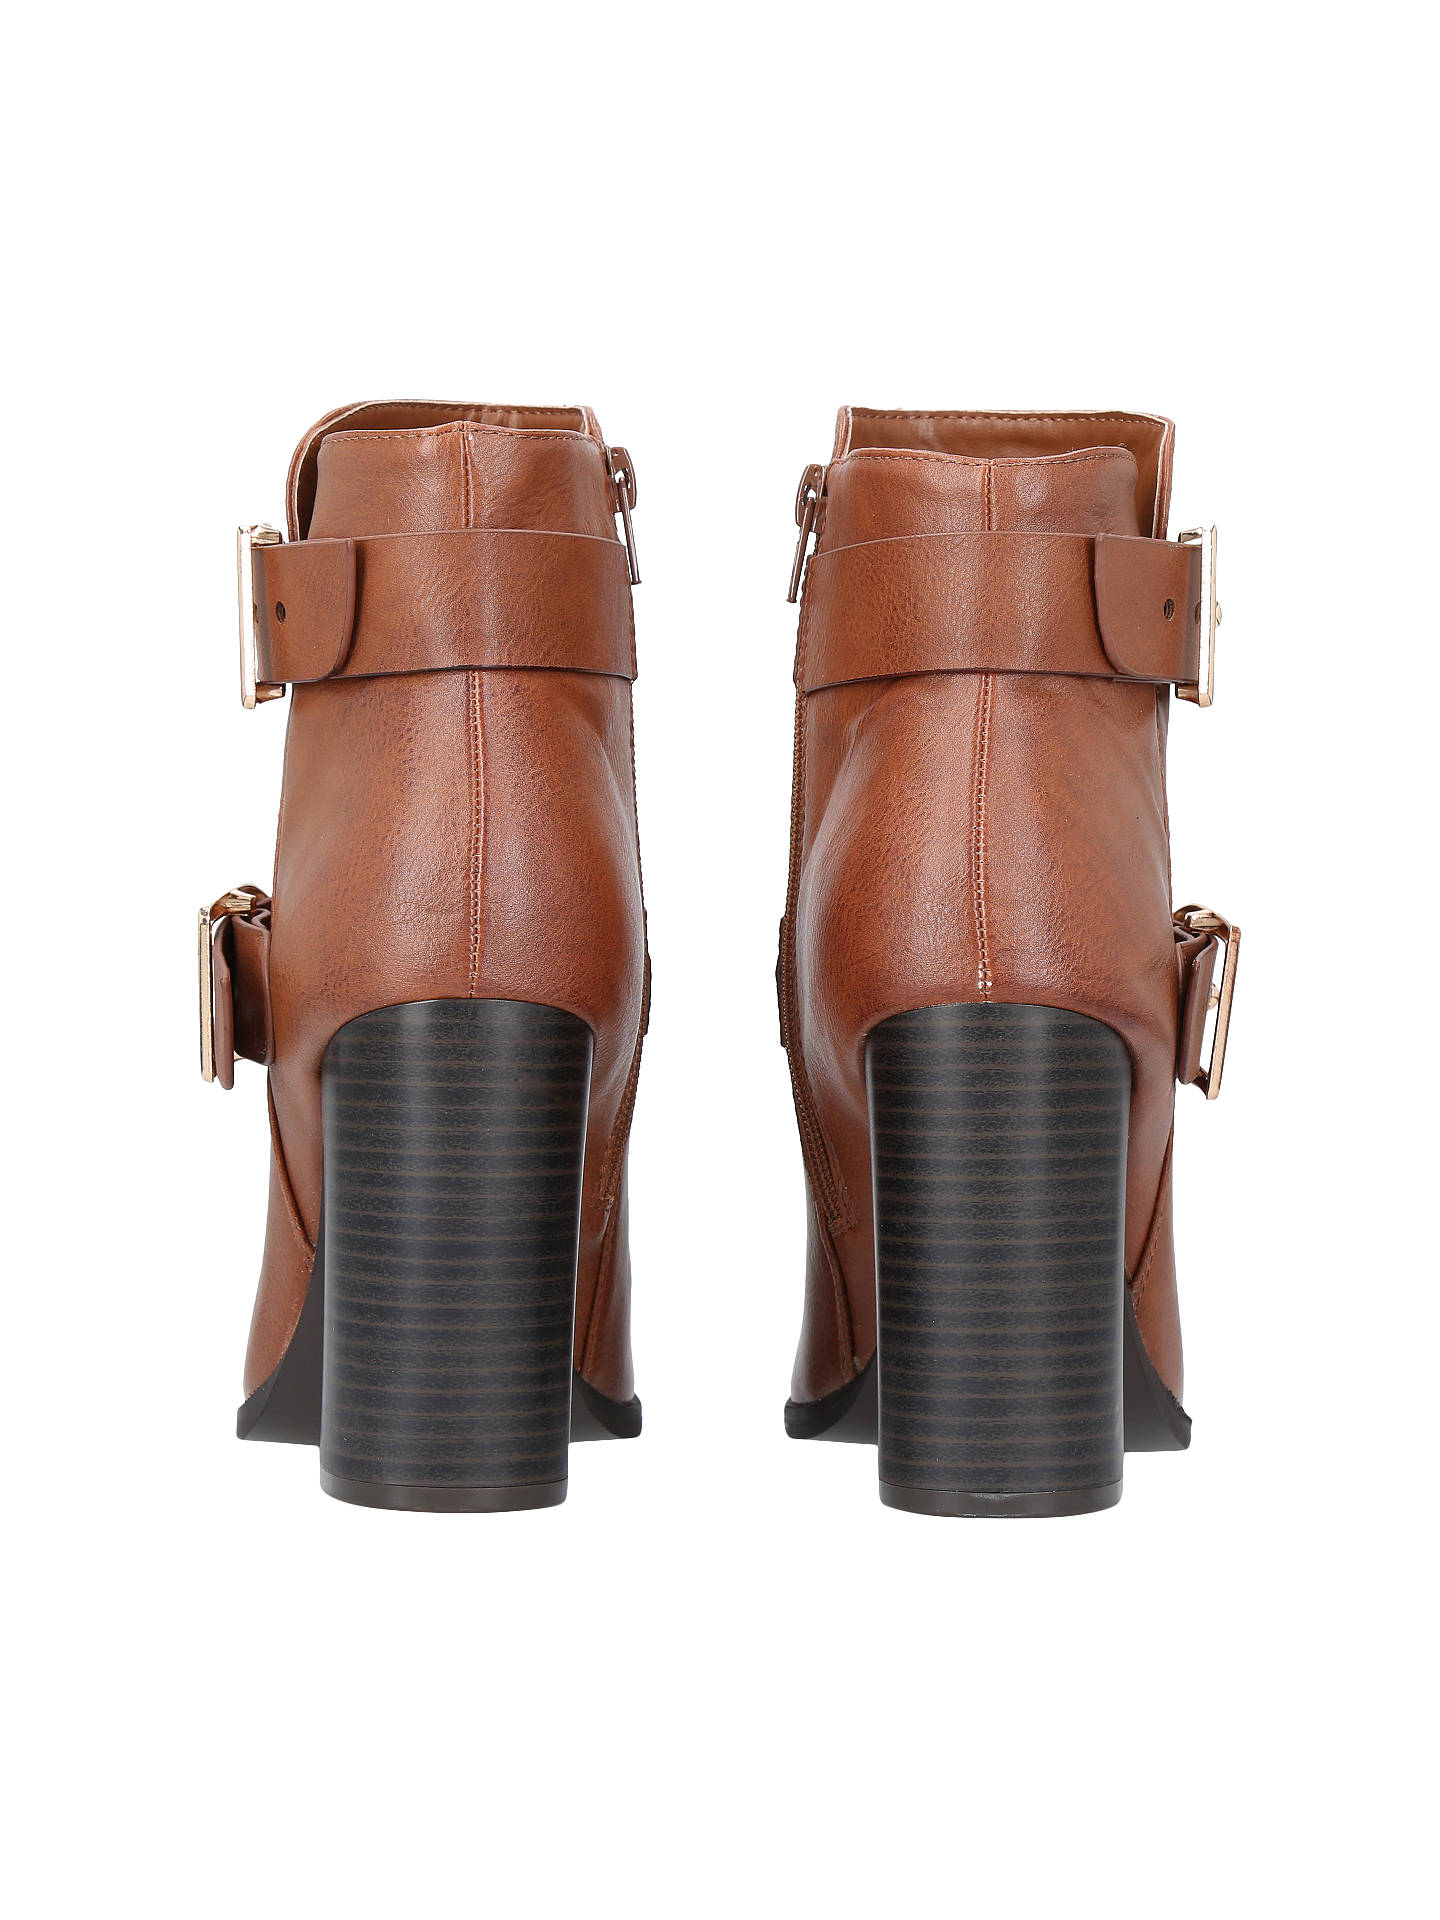 BuyMiss KG Spring Block Heeled Ankle Boots, Tan, 3 Online at johnlewis.com